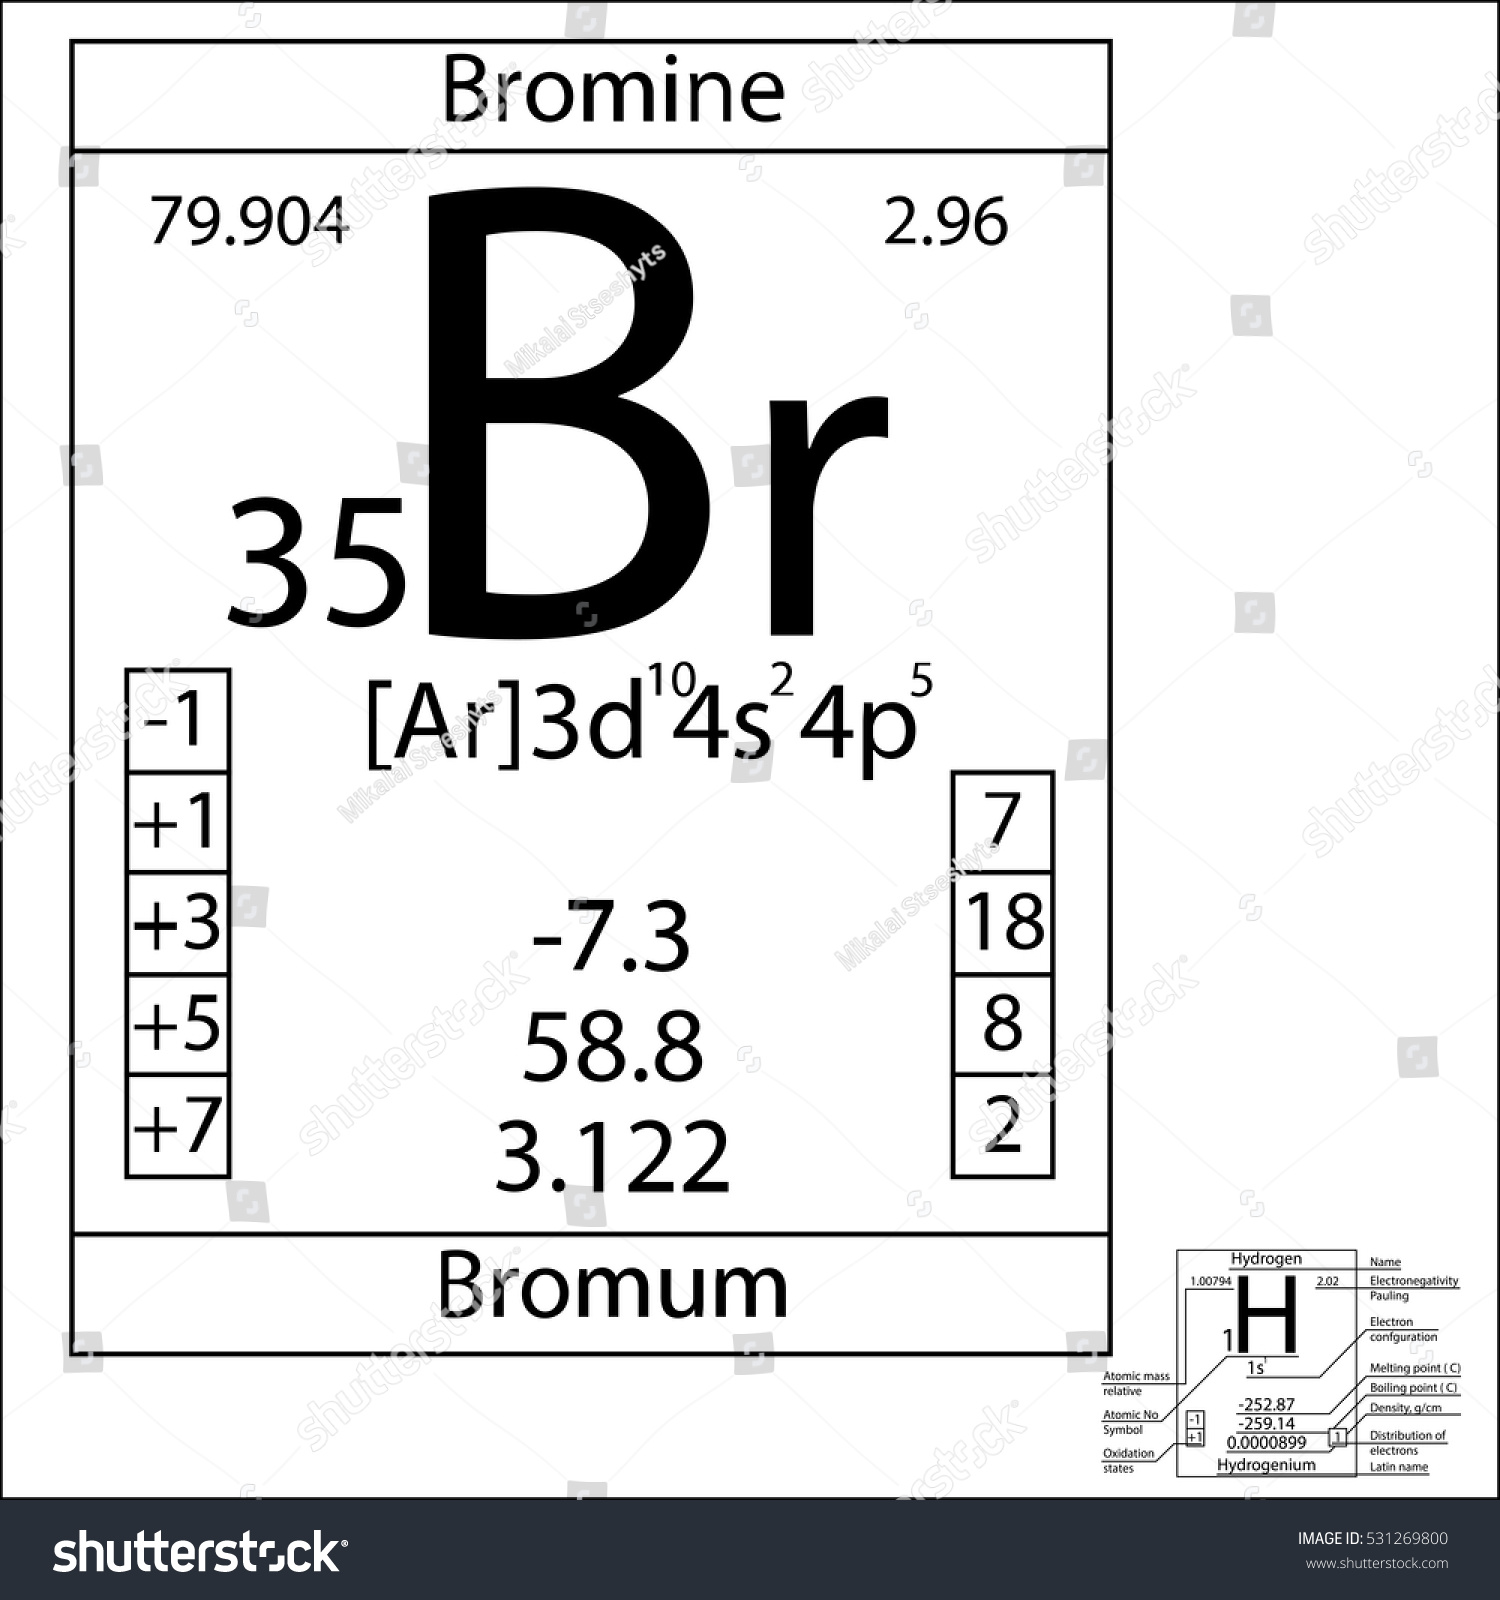 Periodic table element bromine basic properties stock vector the periodic table element bromine with the basic properties gamestrikefo Choice Image